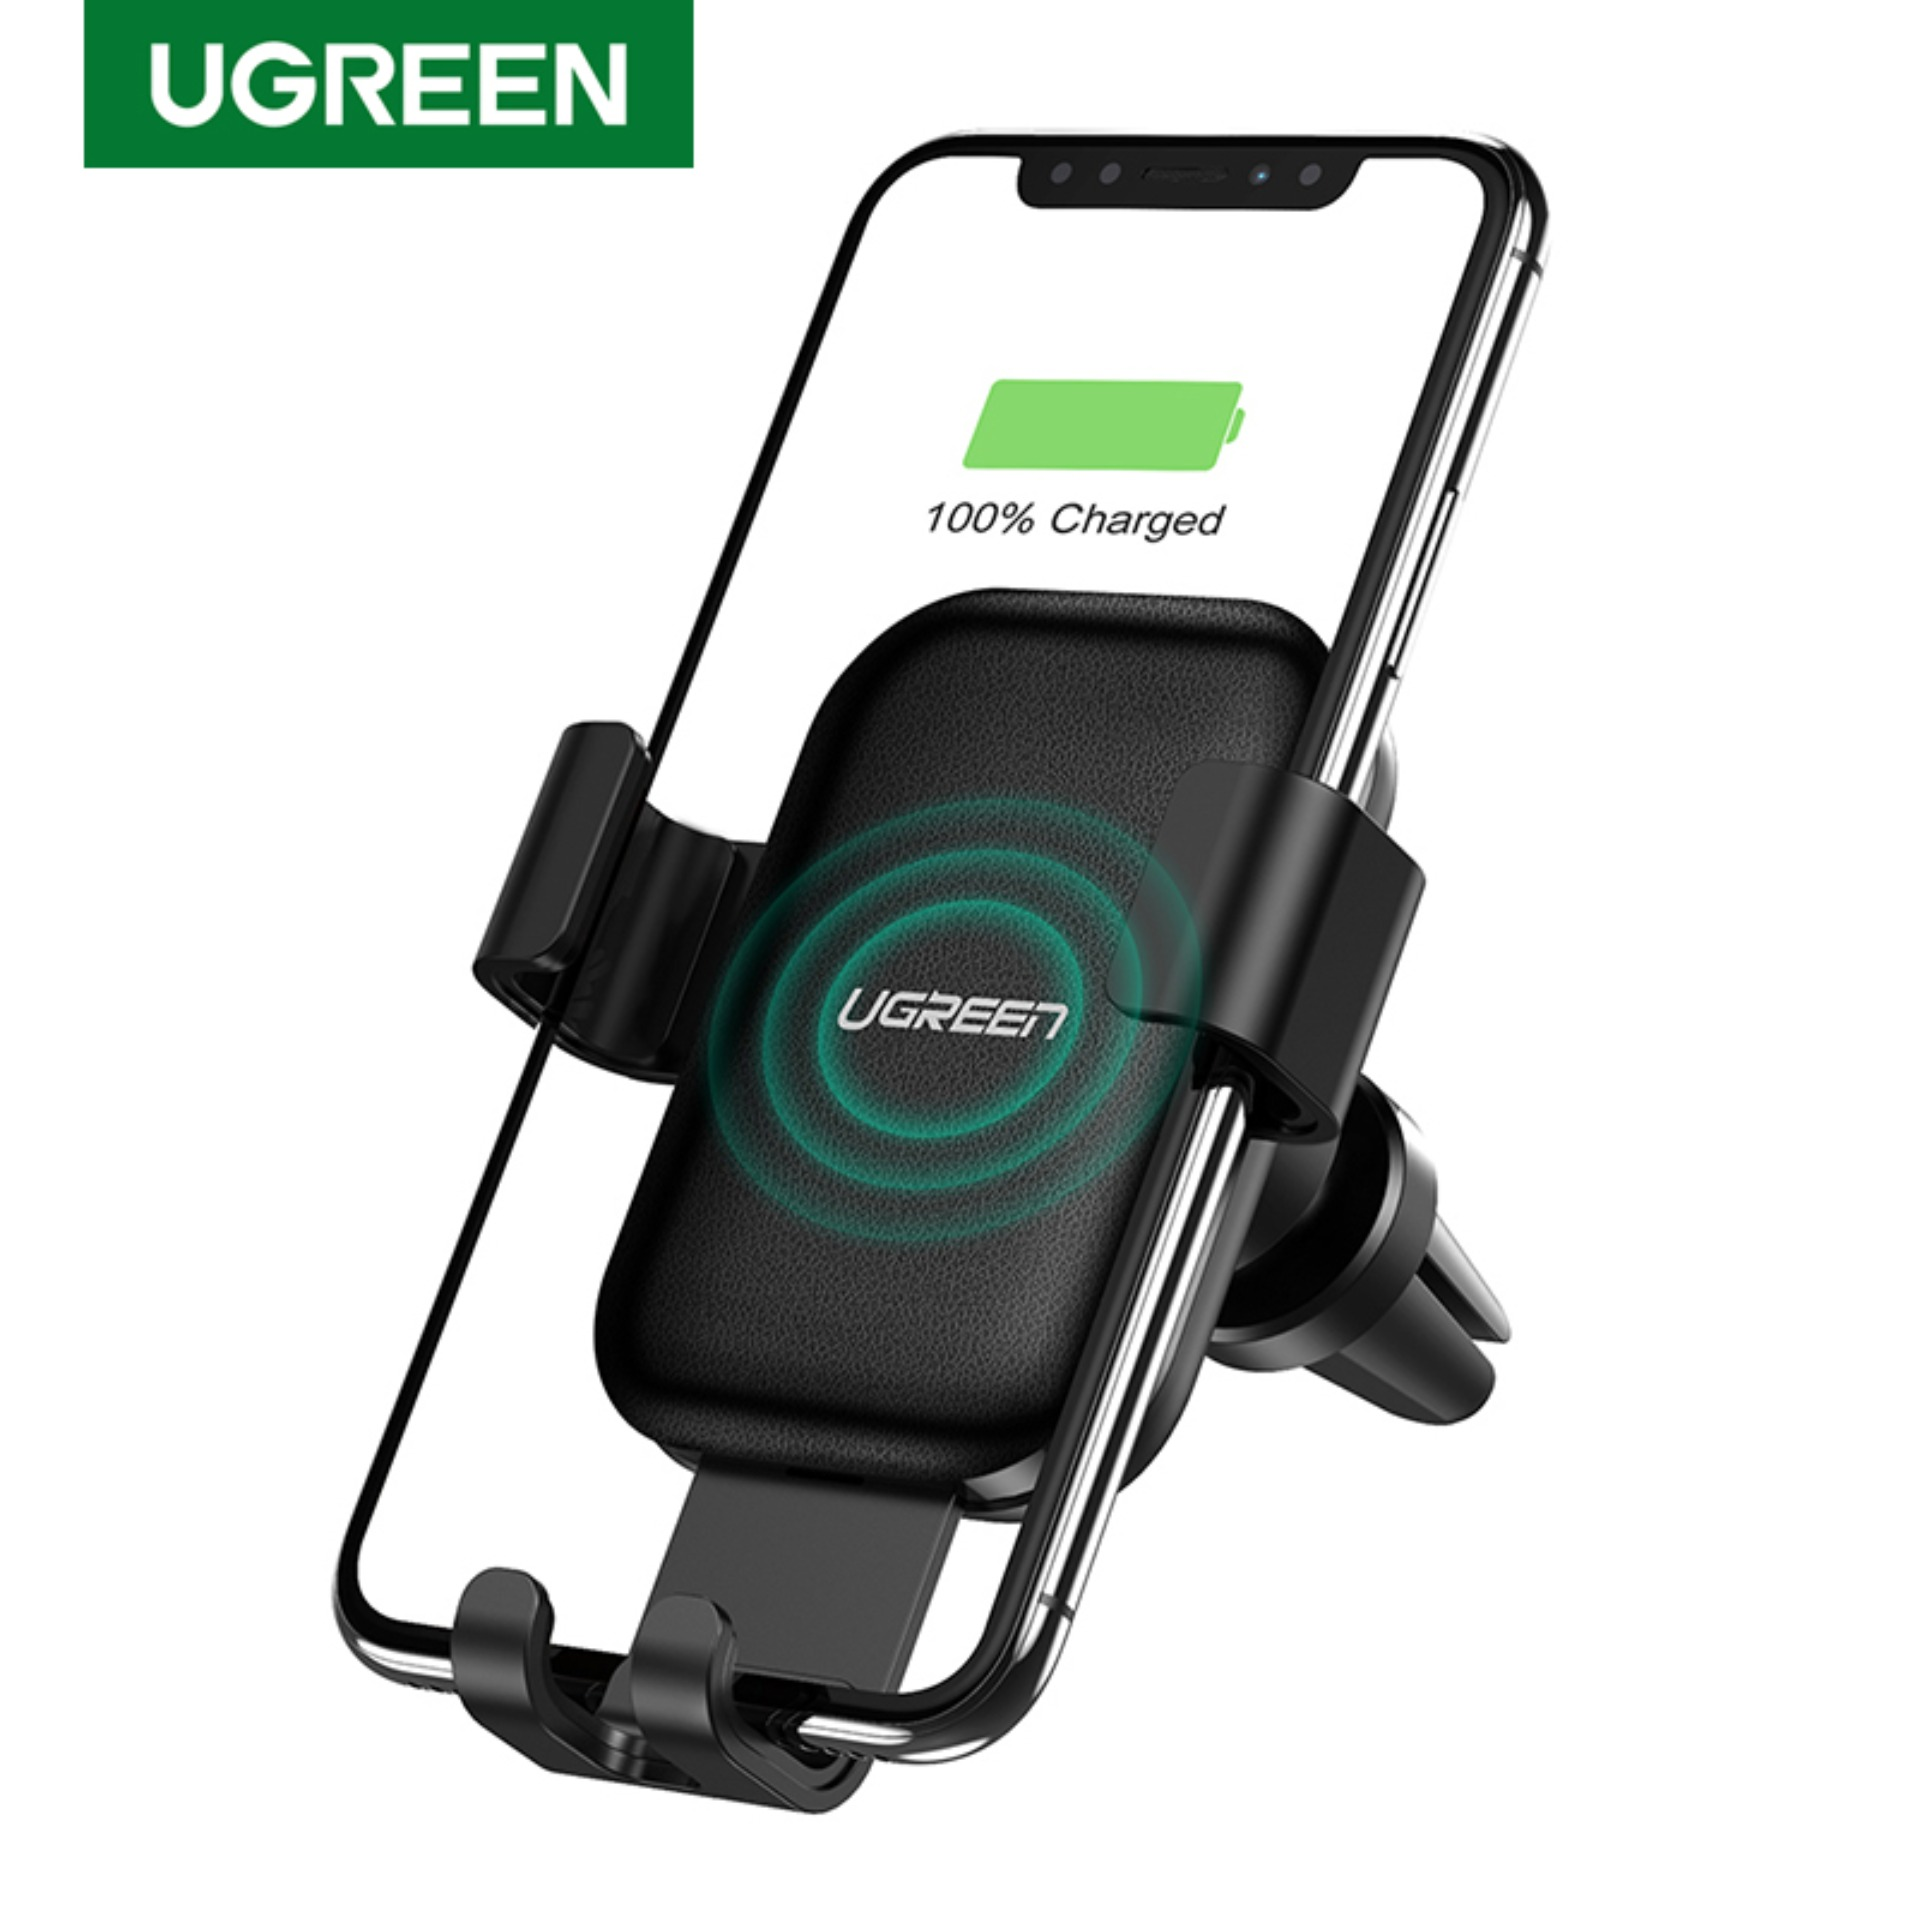 Car Phone Holder and Charger USAMS Qi Wireless Charger Car Phone Air Vent Holder Strong Magnet Phone Holder for iPhone X//8//8 Plus Samsung Galaxy S9//S9 Plus//S8//S8 Plus and All Qi-Enabled Phones